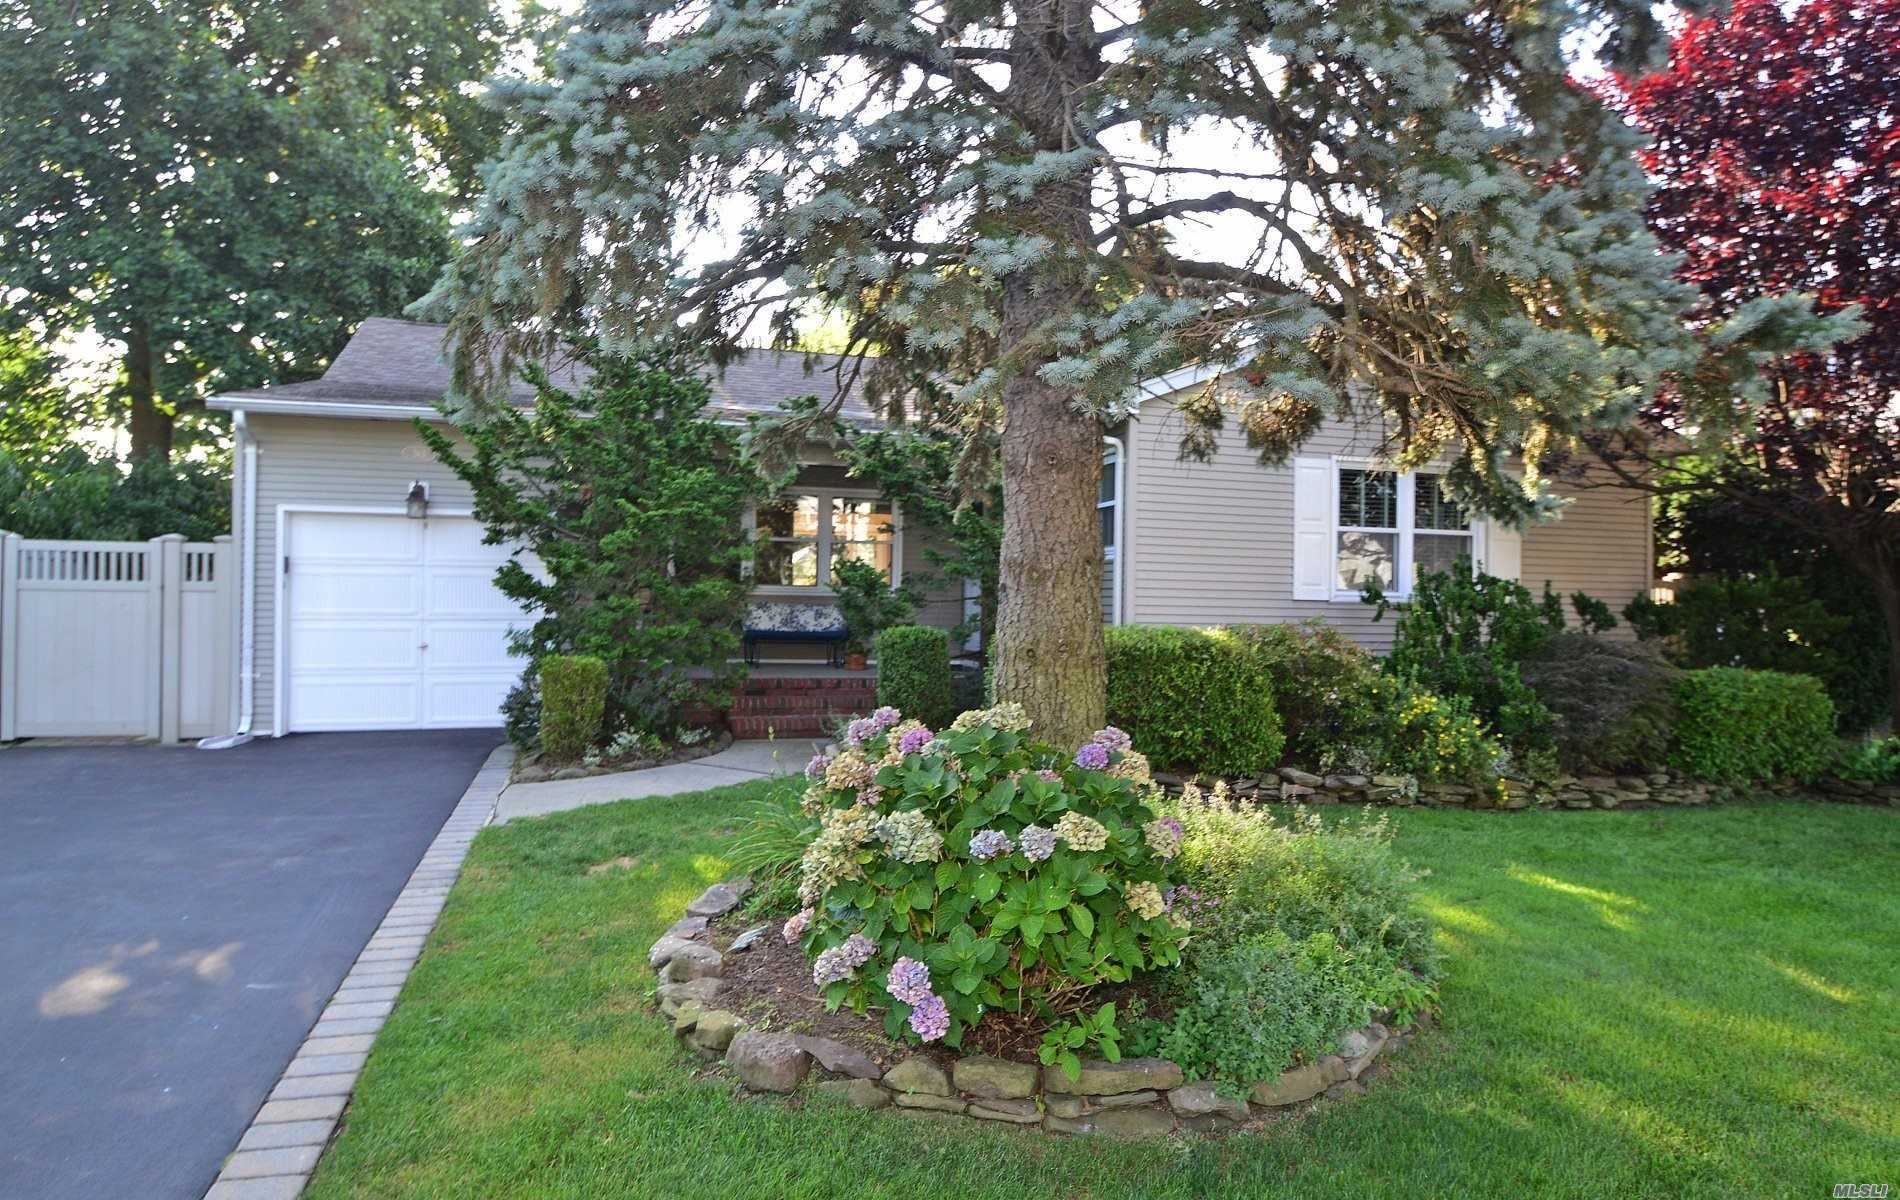 Immac, Ranch 3 Bdrm, 2 Bth, Mb W/ Bath, Cac, Sun Filled Eat-In-Kit With S/S Appl, Double Window Over Lking A Professionally Landscaped Garden/Bay Windows, Skylite, Hd Wd Flrs, Open Floor Plan Create Light N Airy Living Spc Thruout, Liv Rm N Din Rmhave Bay Windows, W/Garden Views That Bring Outdoors In, Home Feels Like An Oasis Is Literally Min From Essentials N Excellent Schl Distr., Home Is Situated On Quiet Street, Low Taxes, Double Size Driveway, Ingr Sprk, 2 Zone Heating, Execersize Rm+Office Bsmt , Fm Rm